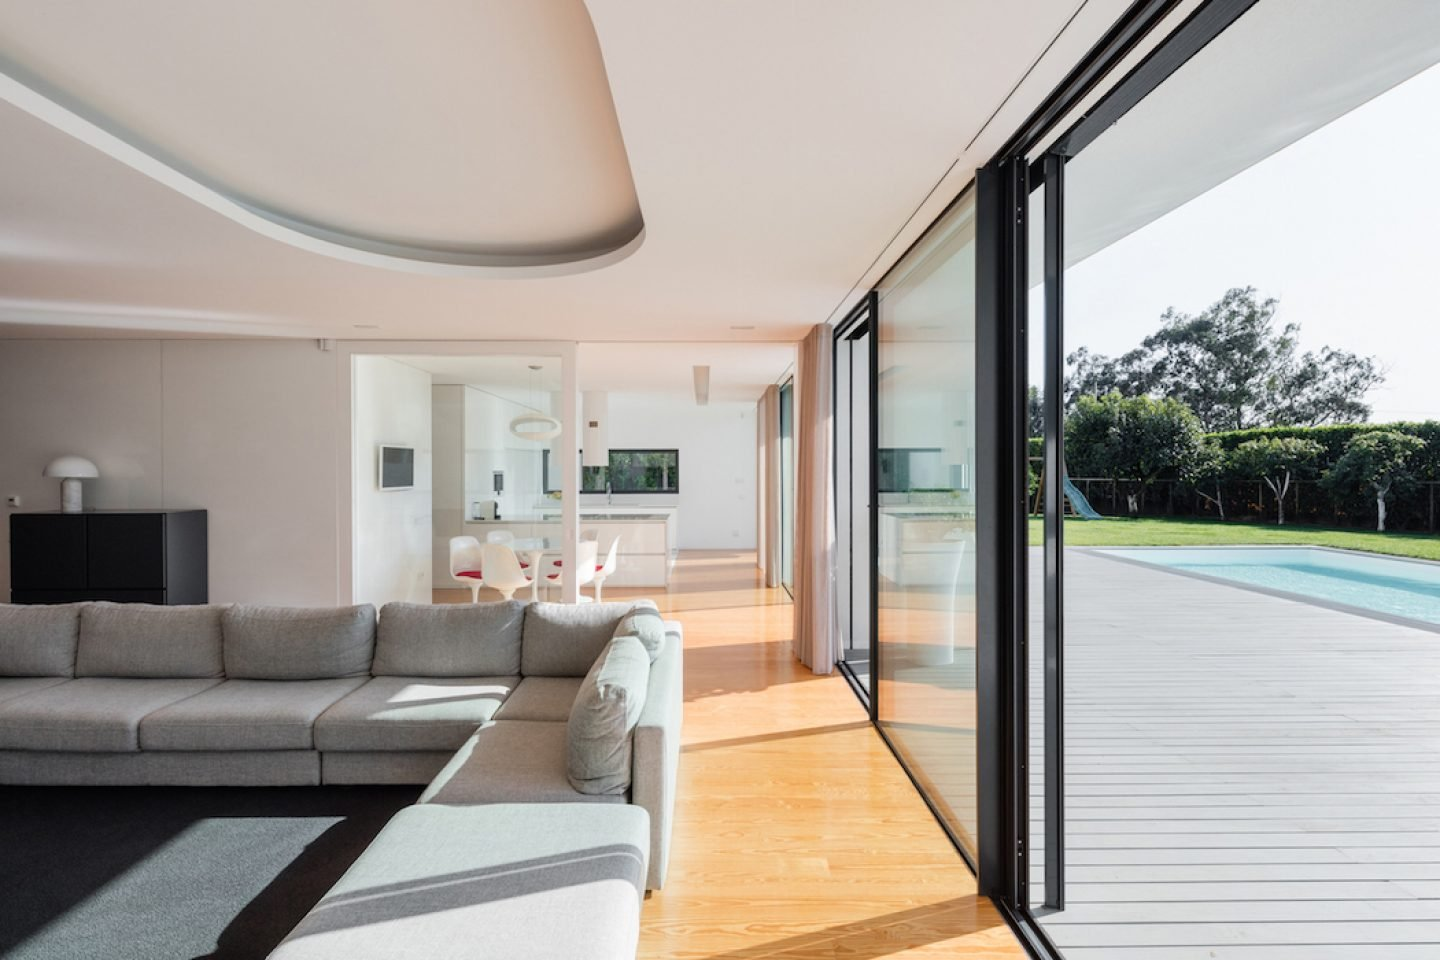 Vila do Conde House - Raulino Arquitecto (09)